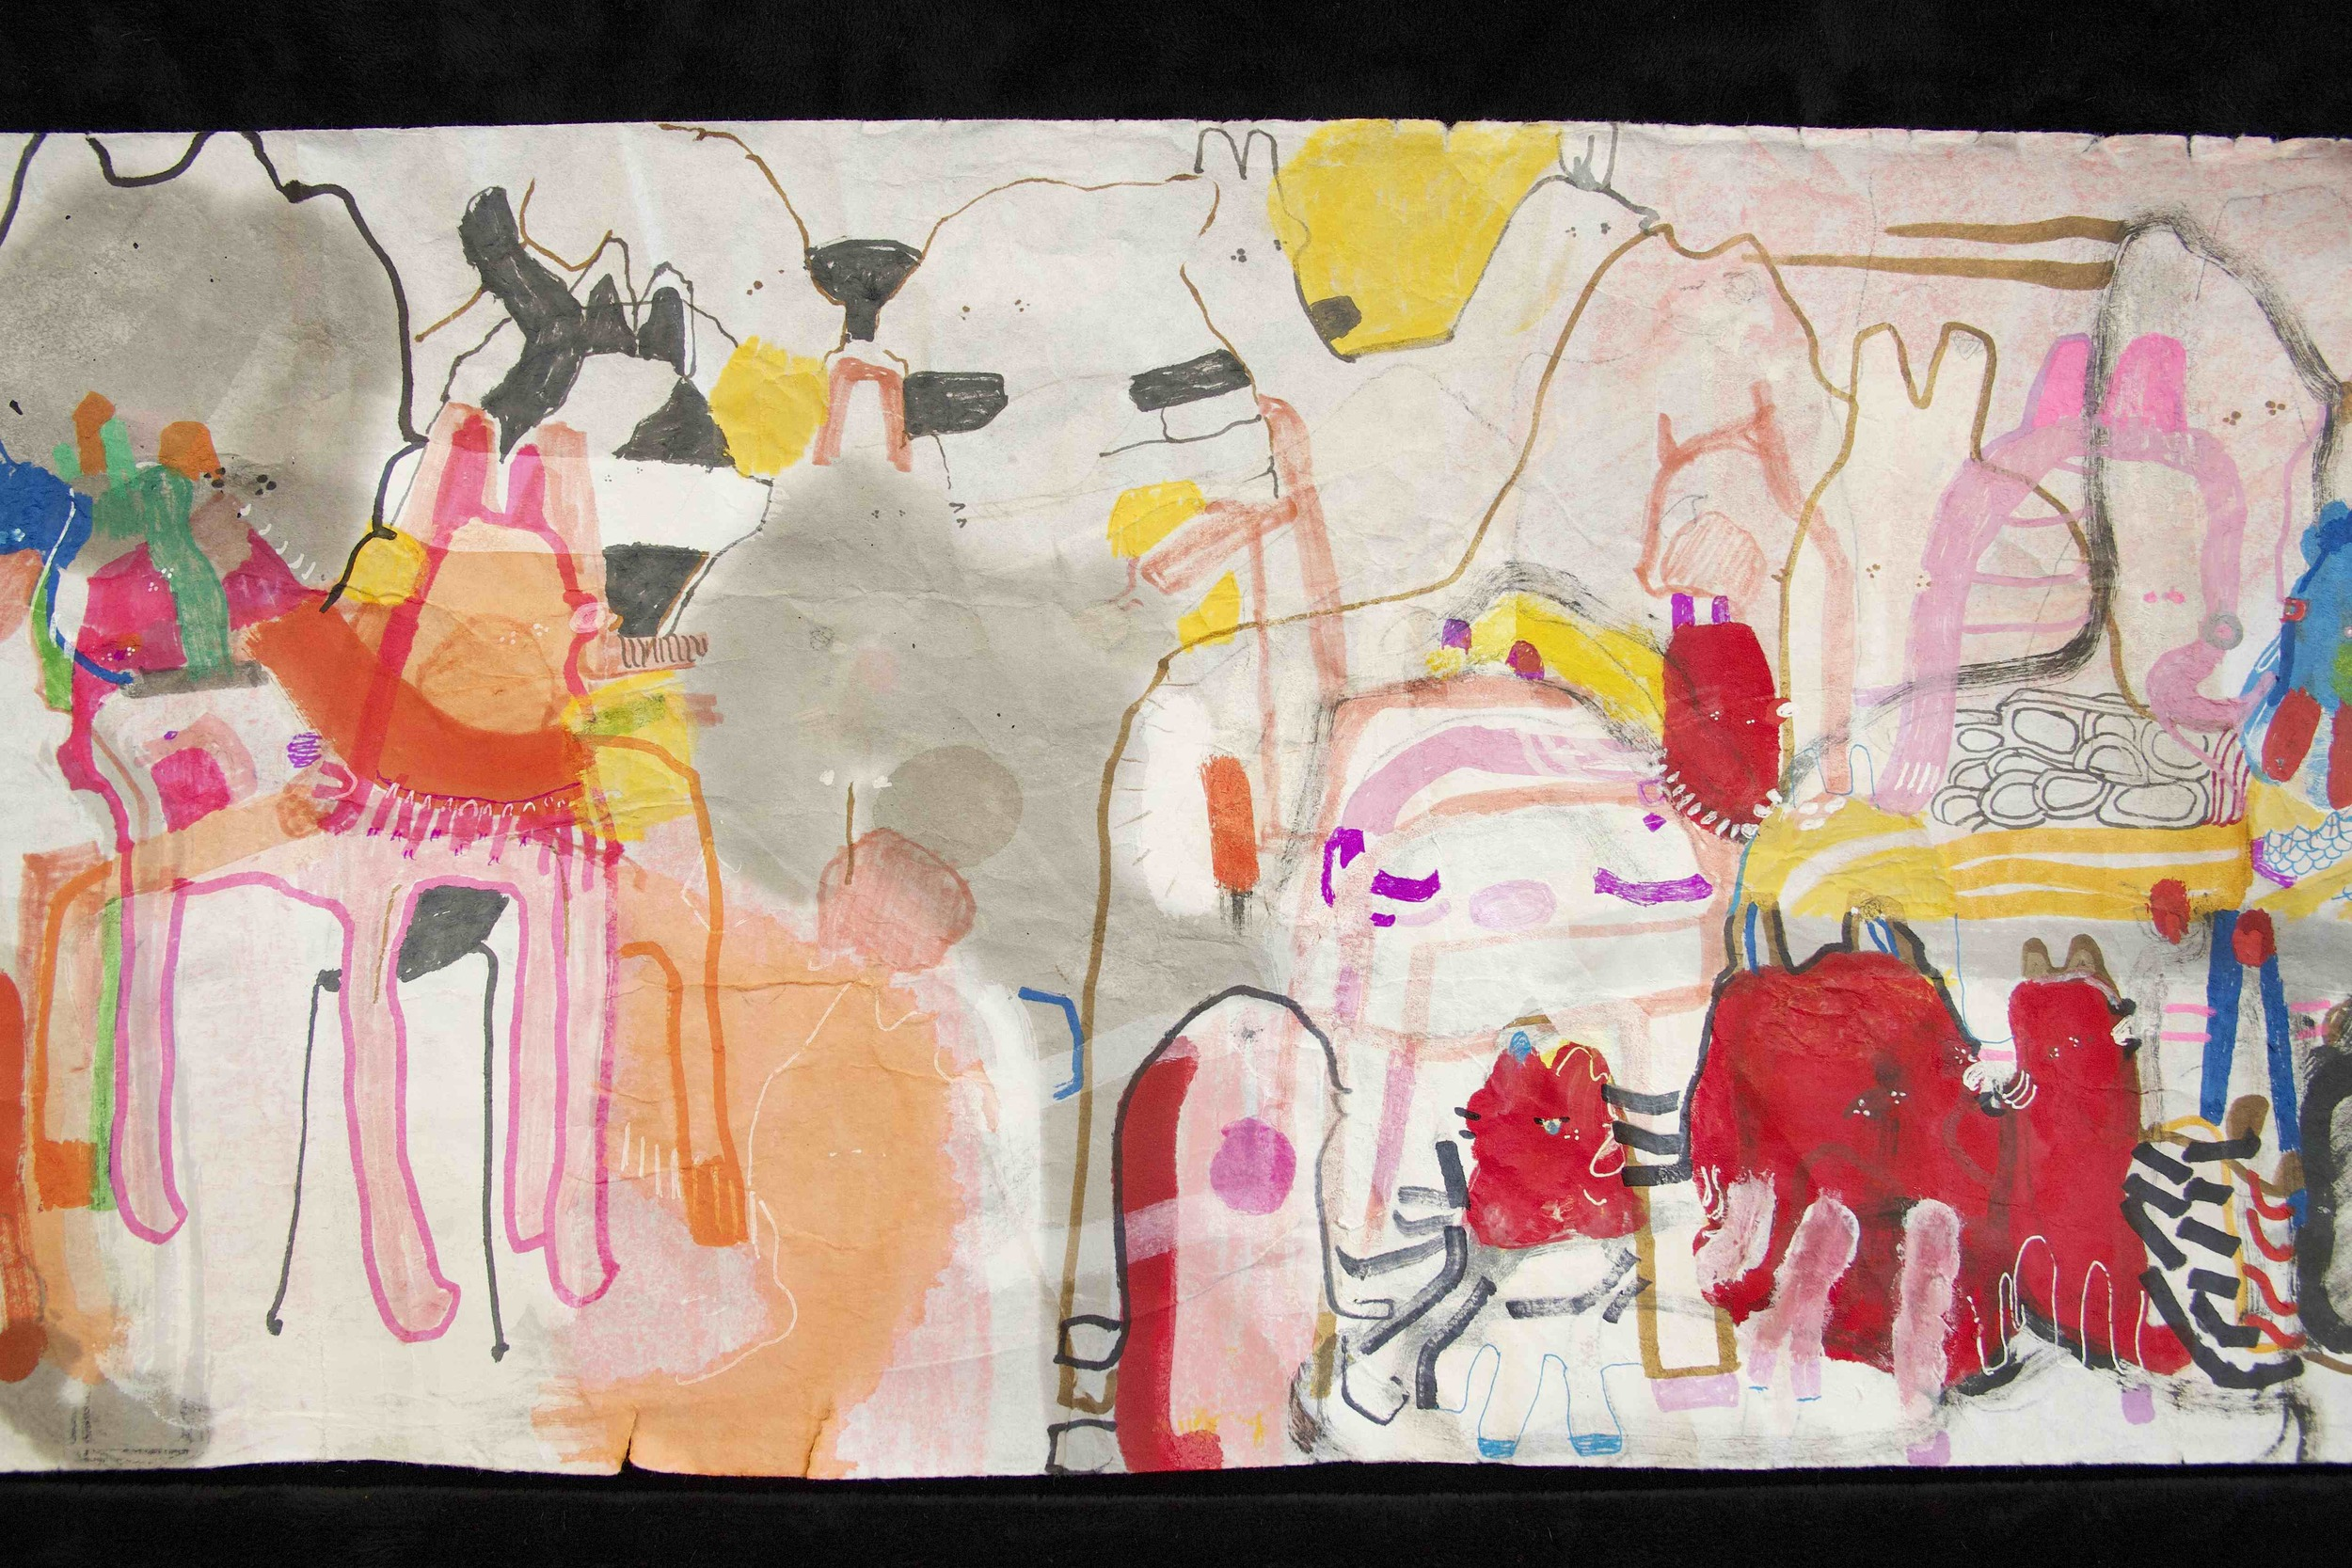 """[Detail no 34]  """"The Wind atop The Wood -Winds of Mount Meru Tangling Threads of Rainbow atop the Wood -Scroll 8""""   11 inches x 60 feet  ink, watercolor, gouache, dye, lost & found paper, crayon and graphite on mulberry paper scroll  2015"""